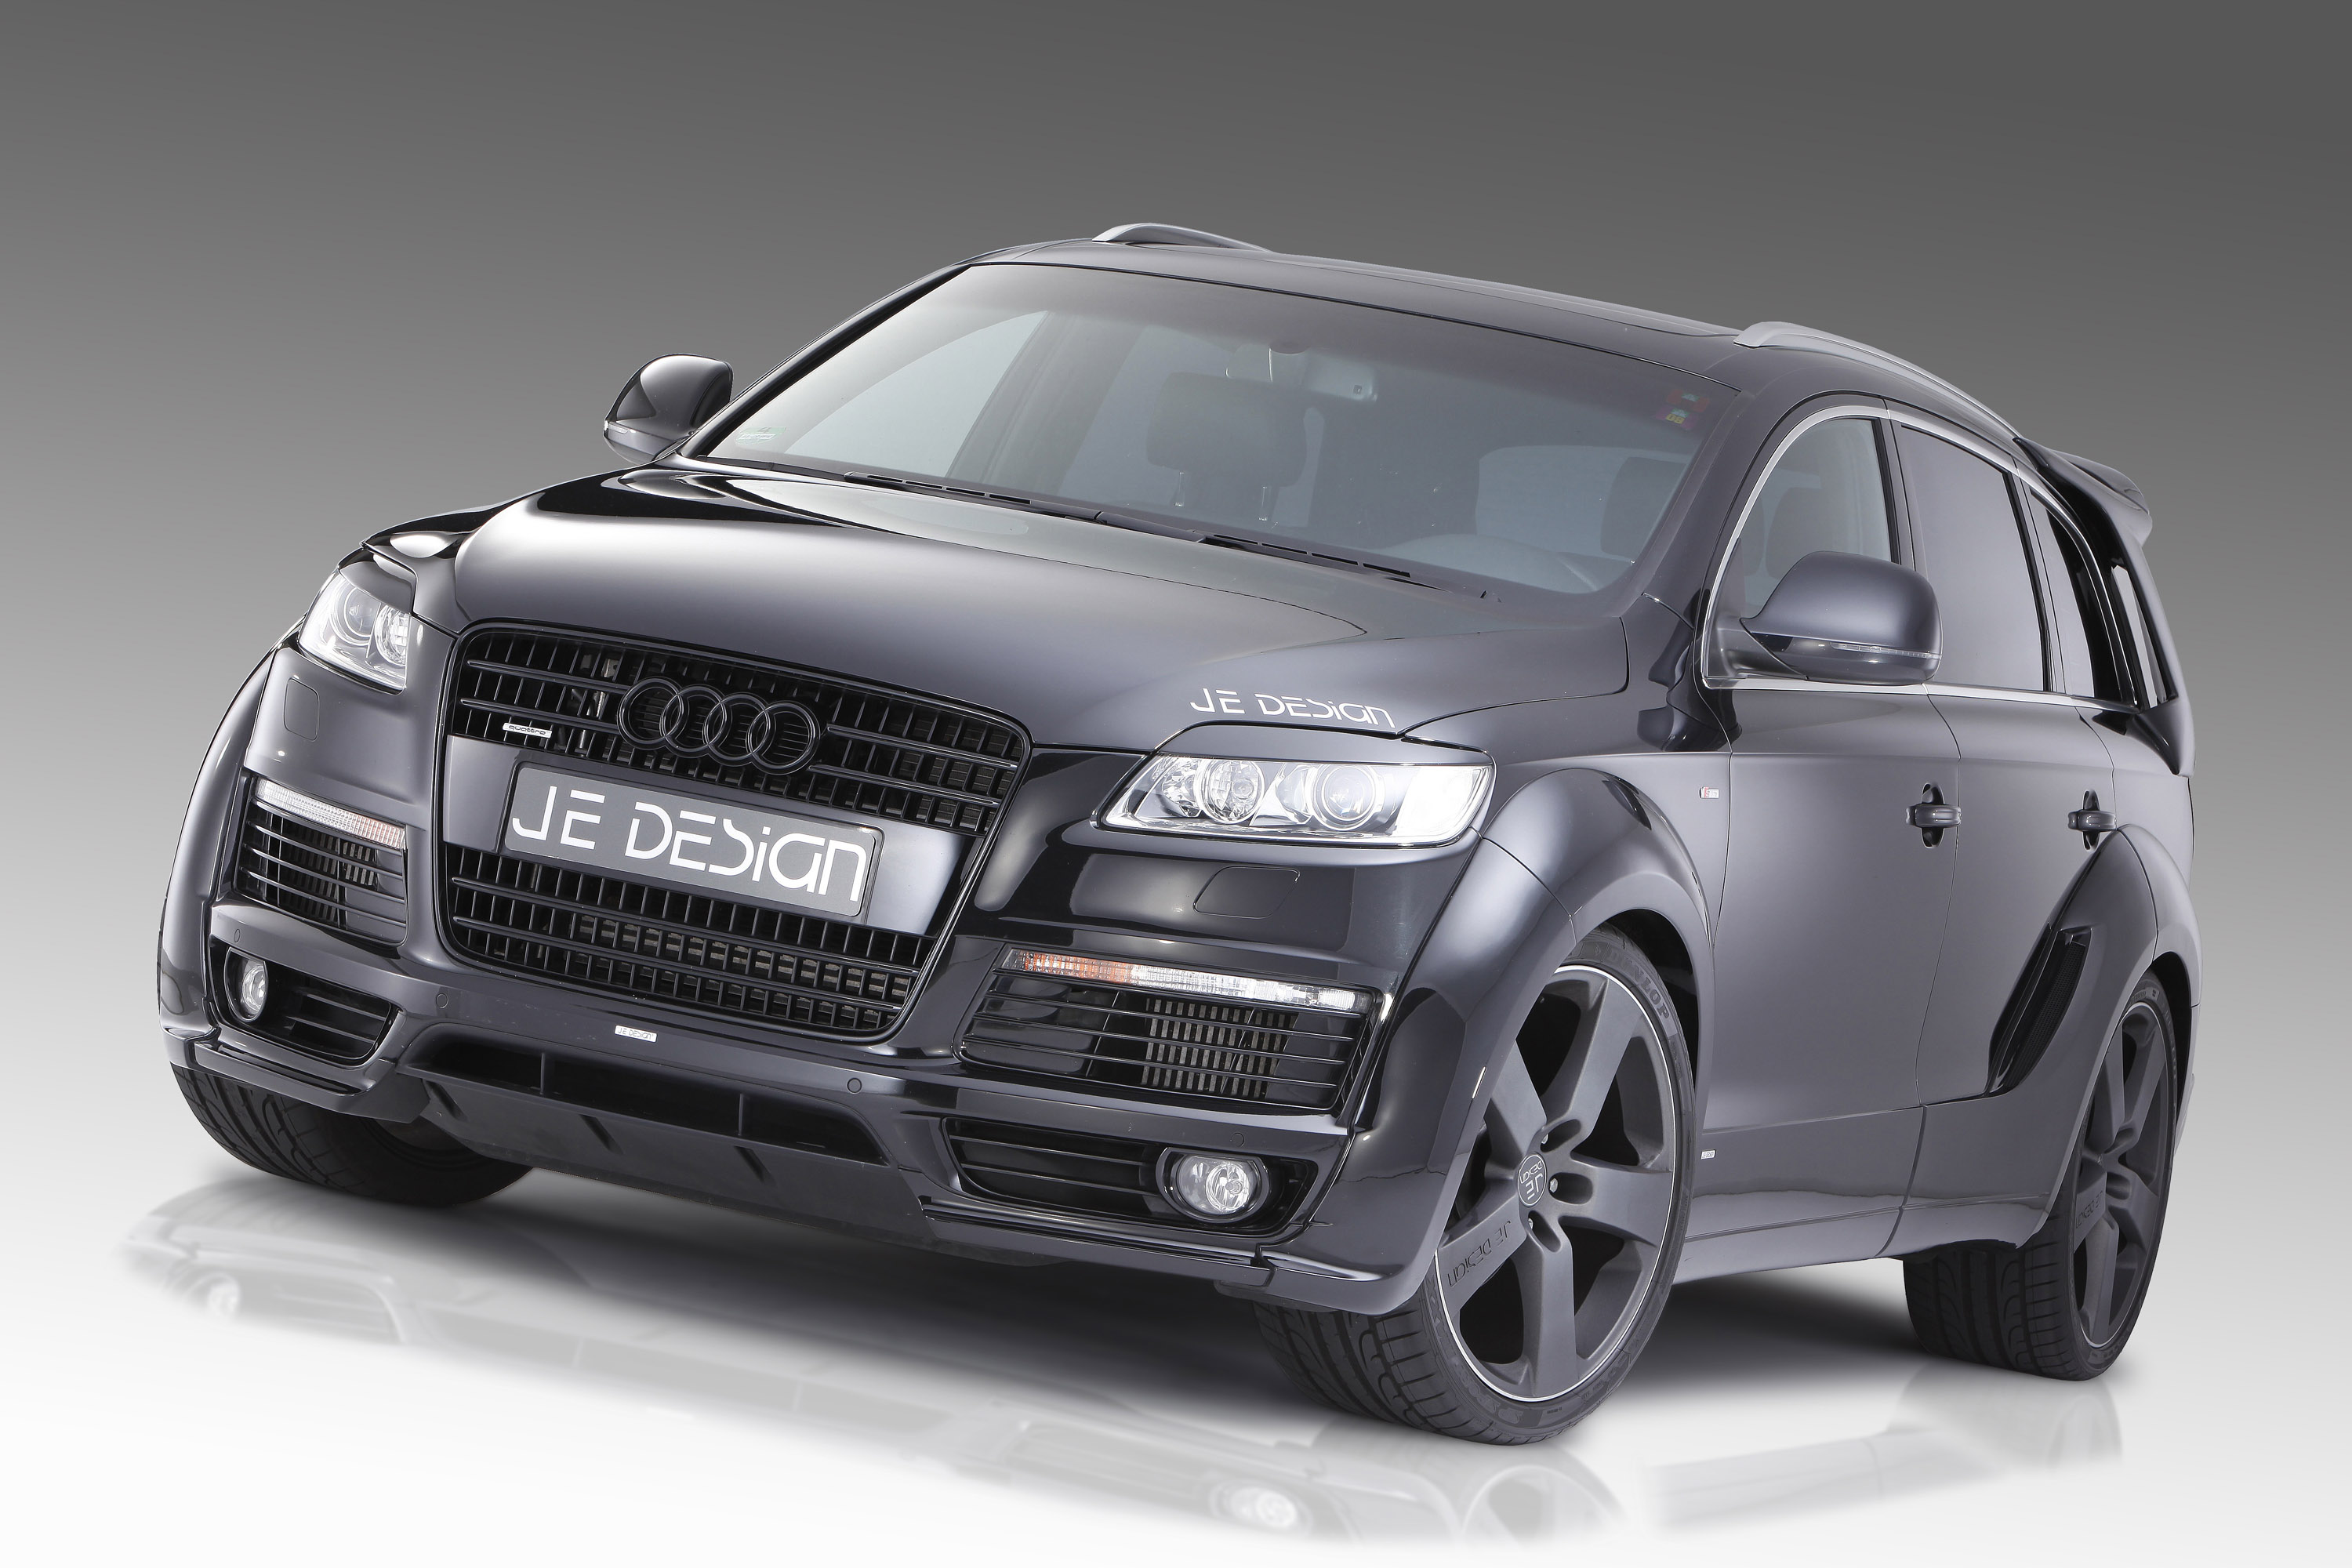 audi q7 s line pimped by je design. Black Bedroom Furniture Sets. Home Design Ideas